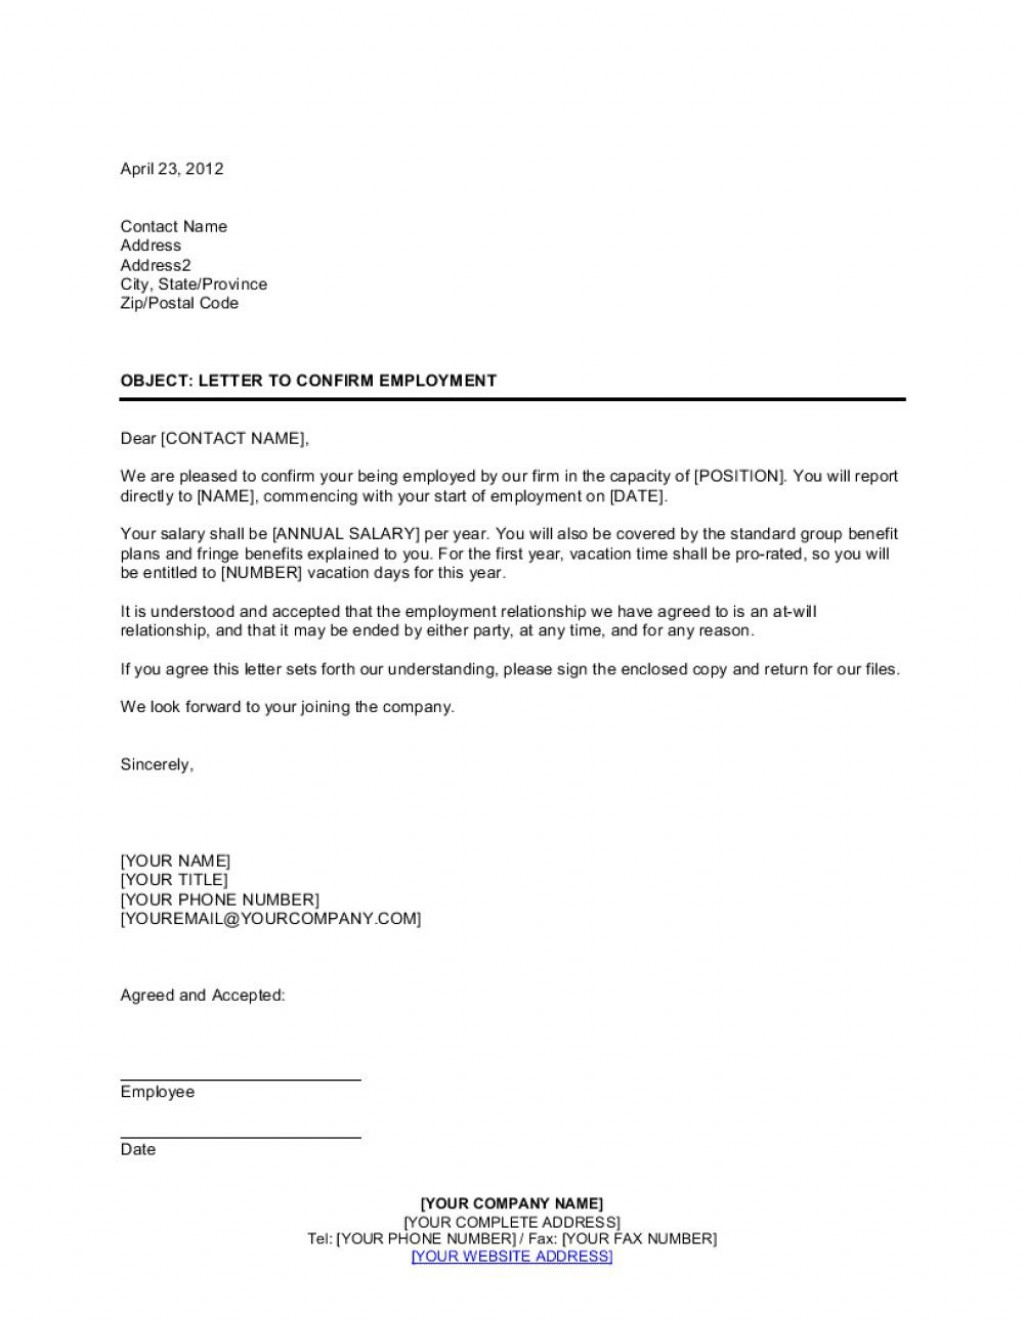 003 Astounding Proof Of Employment Letter Template Design  Confirmation Word FreeLarge